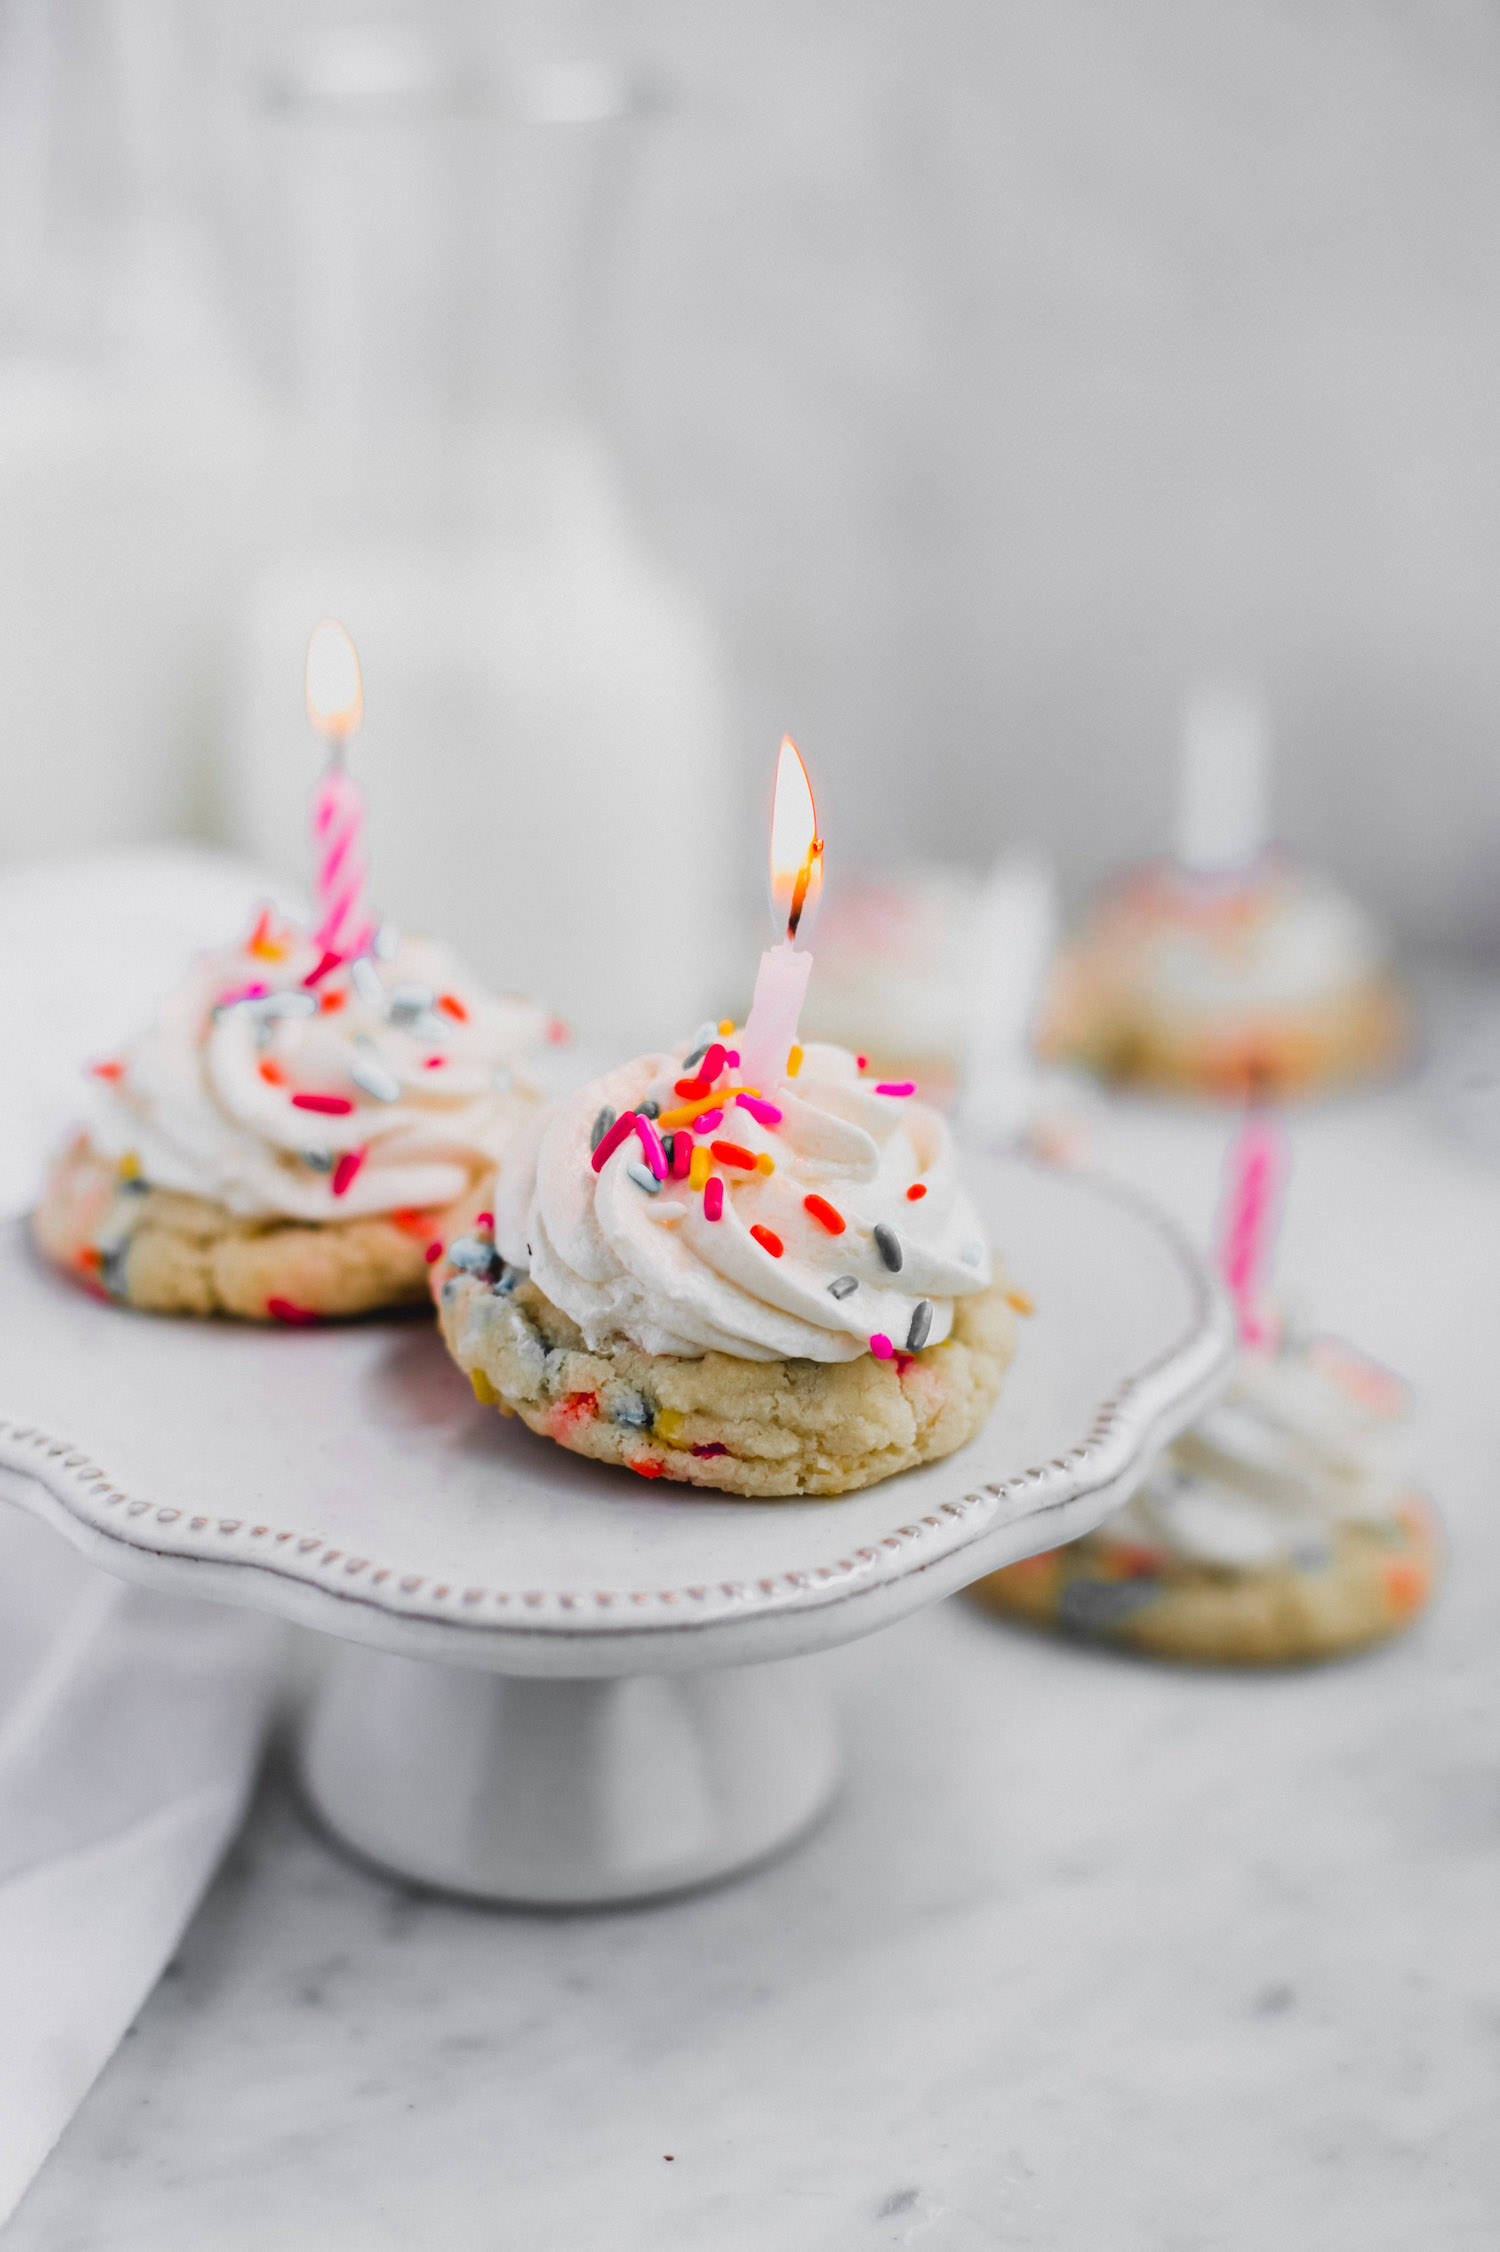 birthday cookies 10.jpgFunfetti Birthday Cookies: sot, chewy, rich, buttery sprinkle cookies topped with cream cheese frosting. Add a candle and you've got the ultimate birthday cookie! |TrufflesandTrends.com